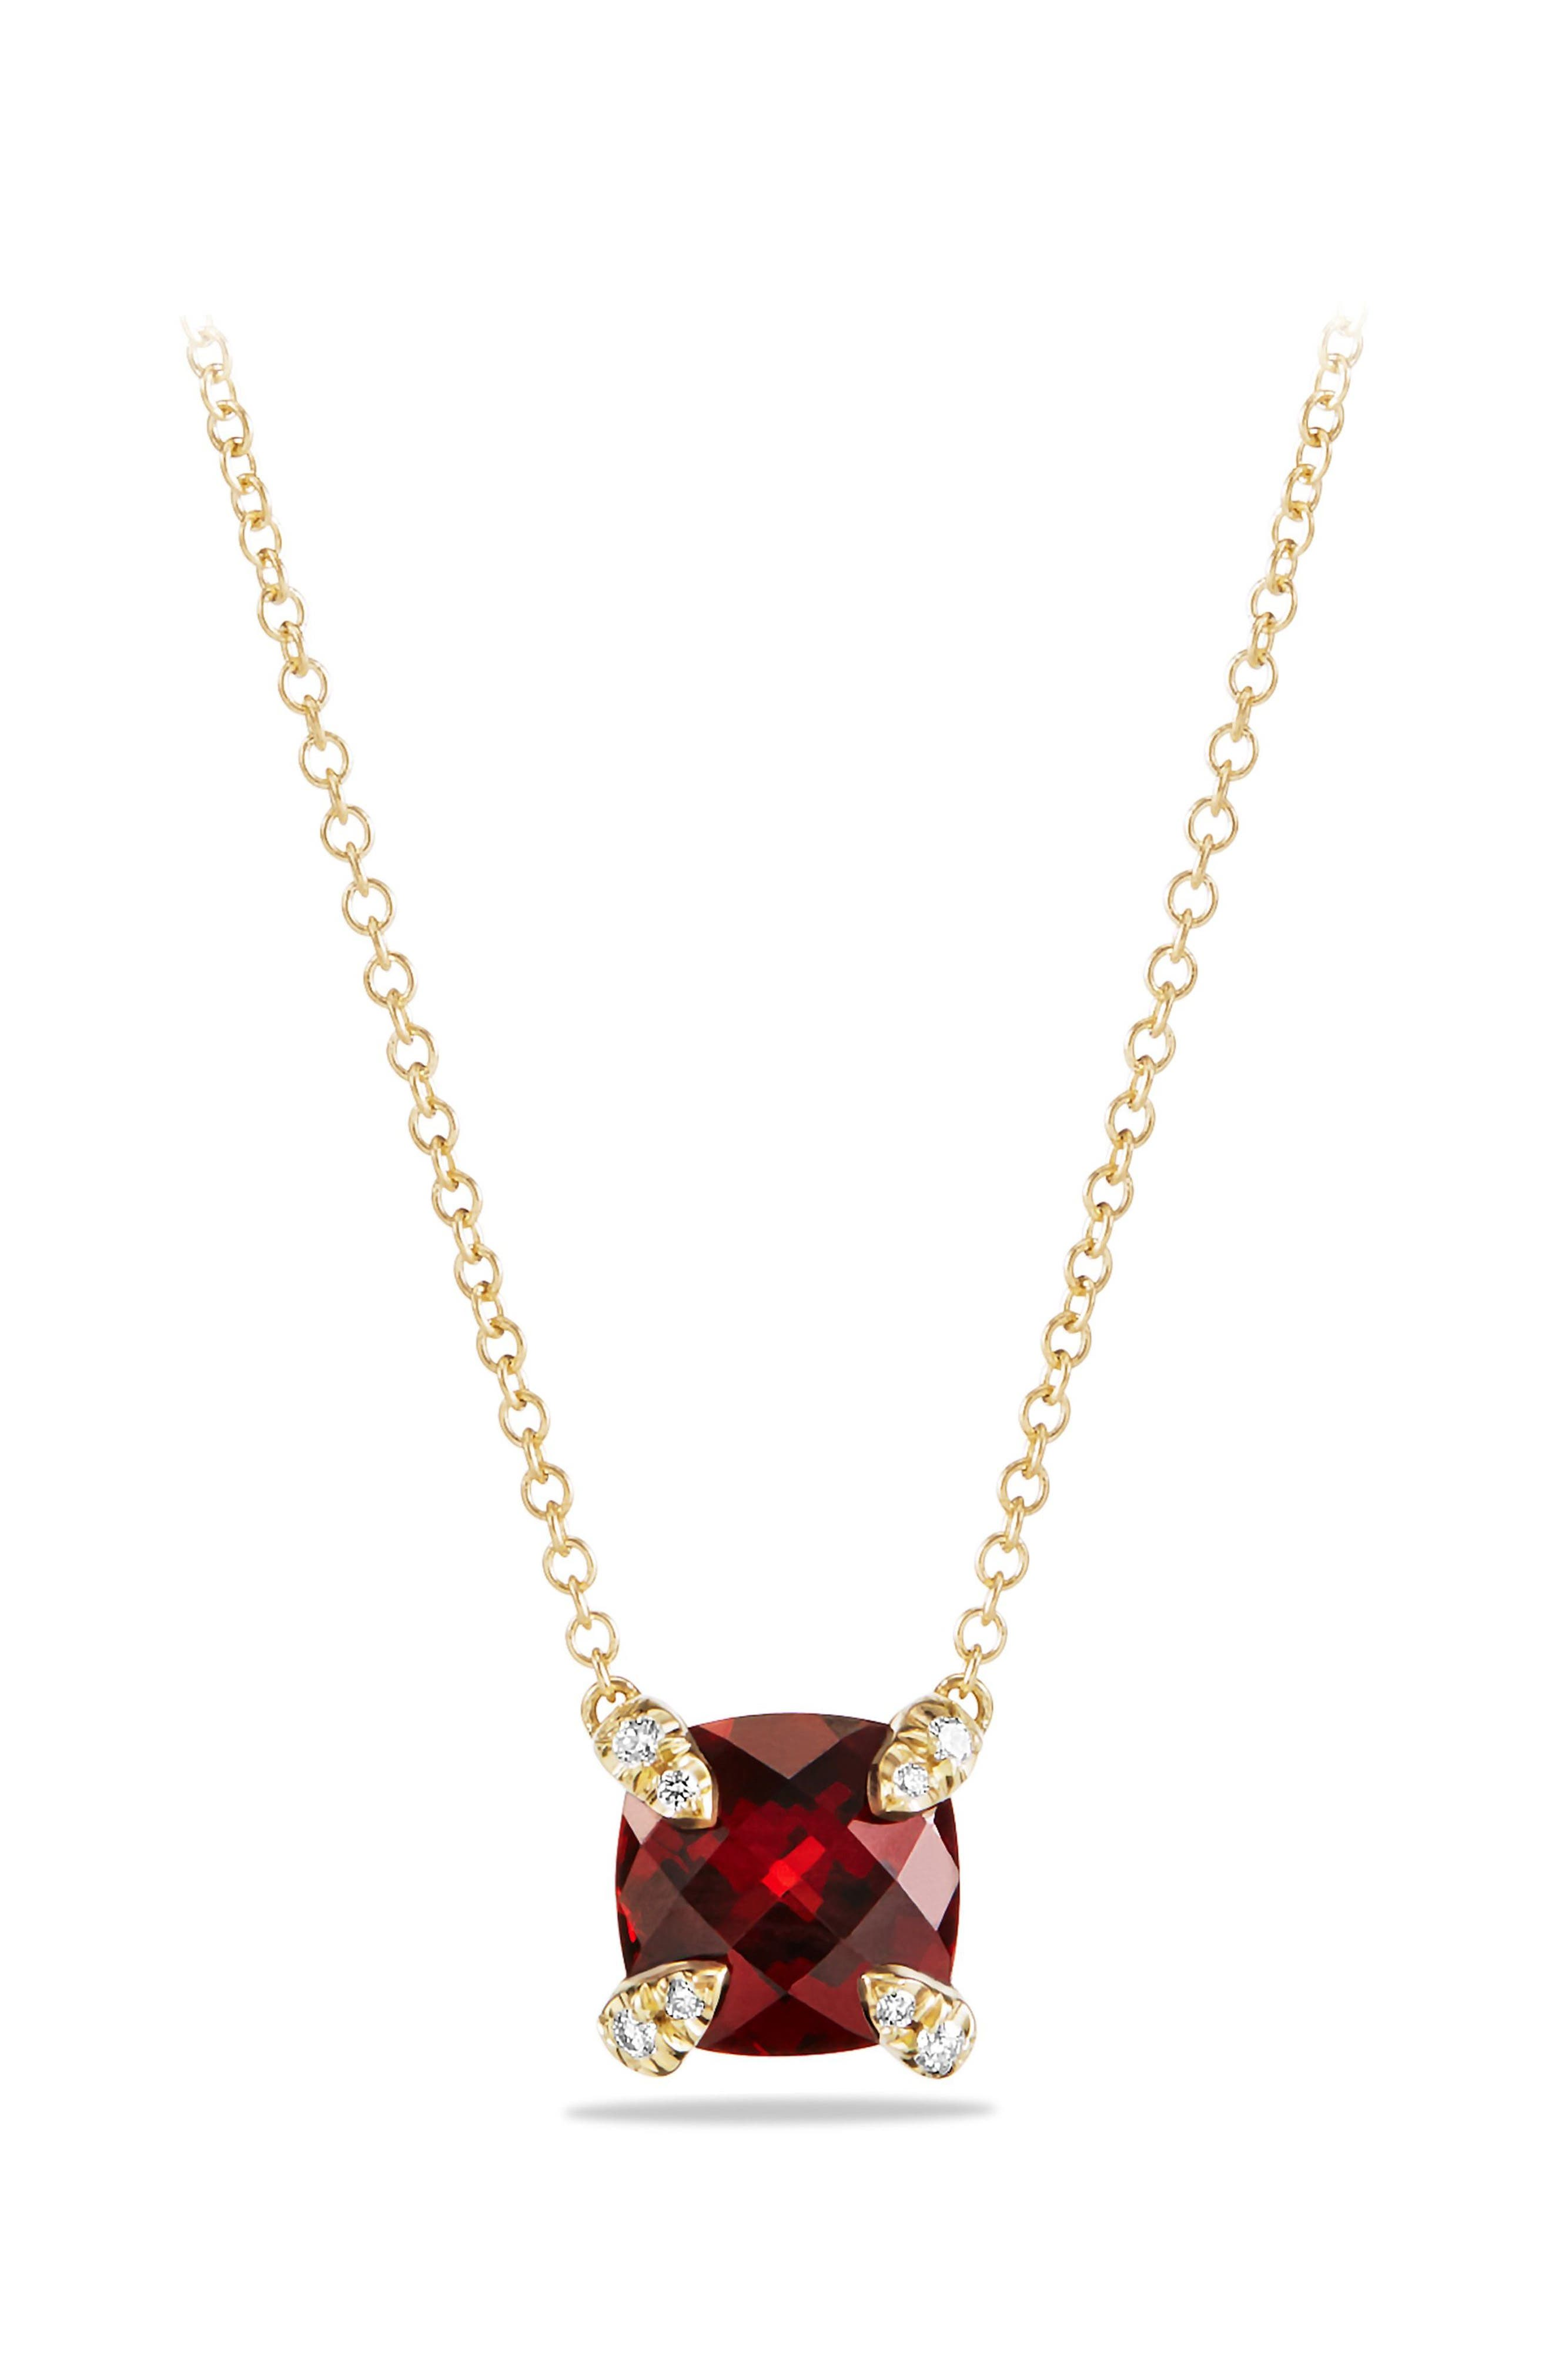 'Châtelaine' Pendant Necklace with Semiprecious Stone and Diamonds in 18K Gold,                             Main thumbnail 1, color,                             Garnet